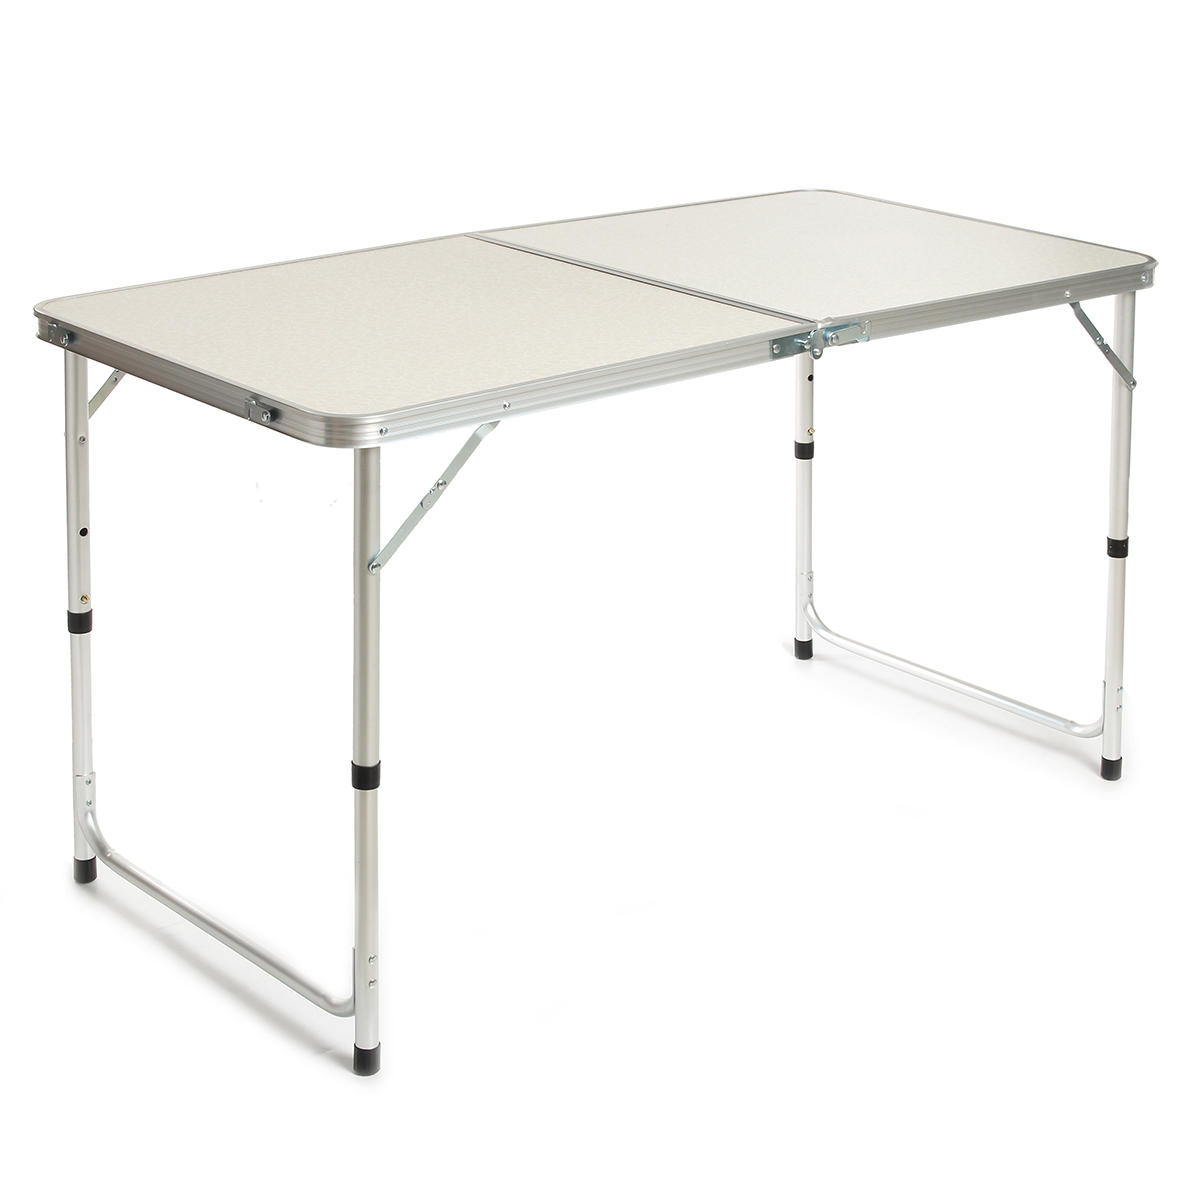 Portable Folding Table Laptop Desk Study Table Aluminum Camping Table with Carrying Handle and Adjustable Legs Table for фото